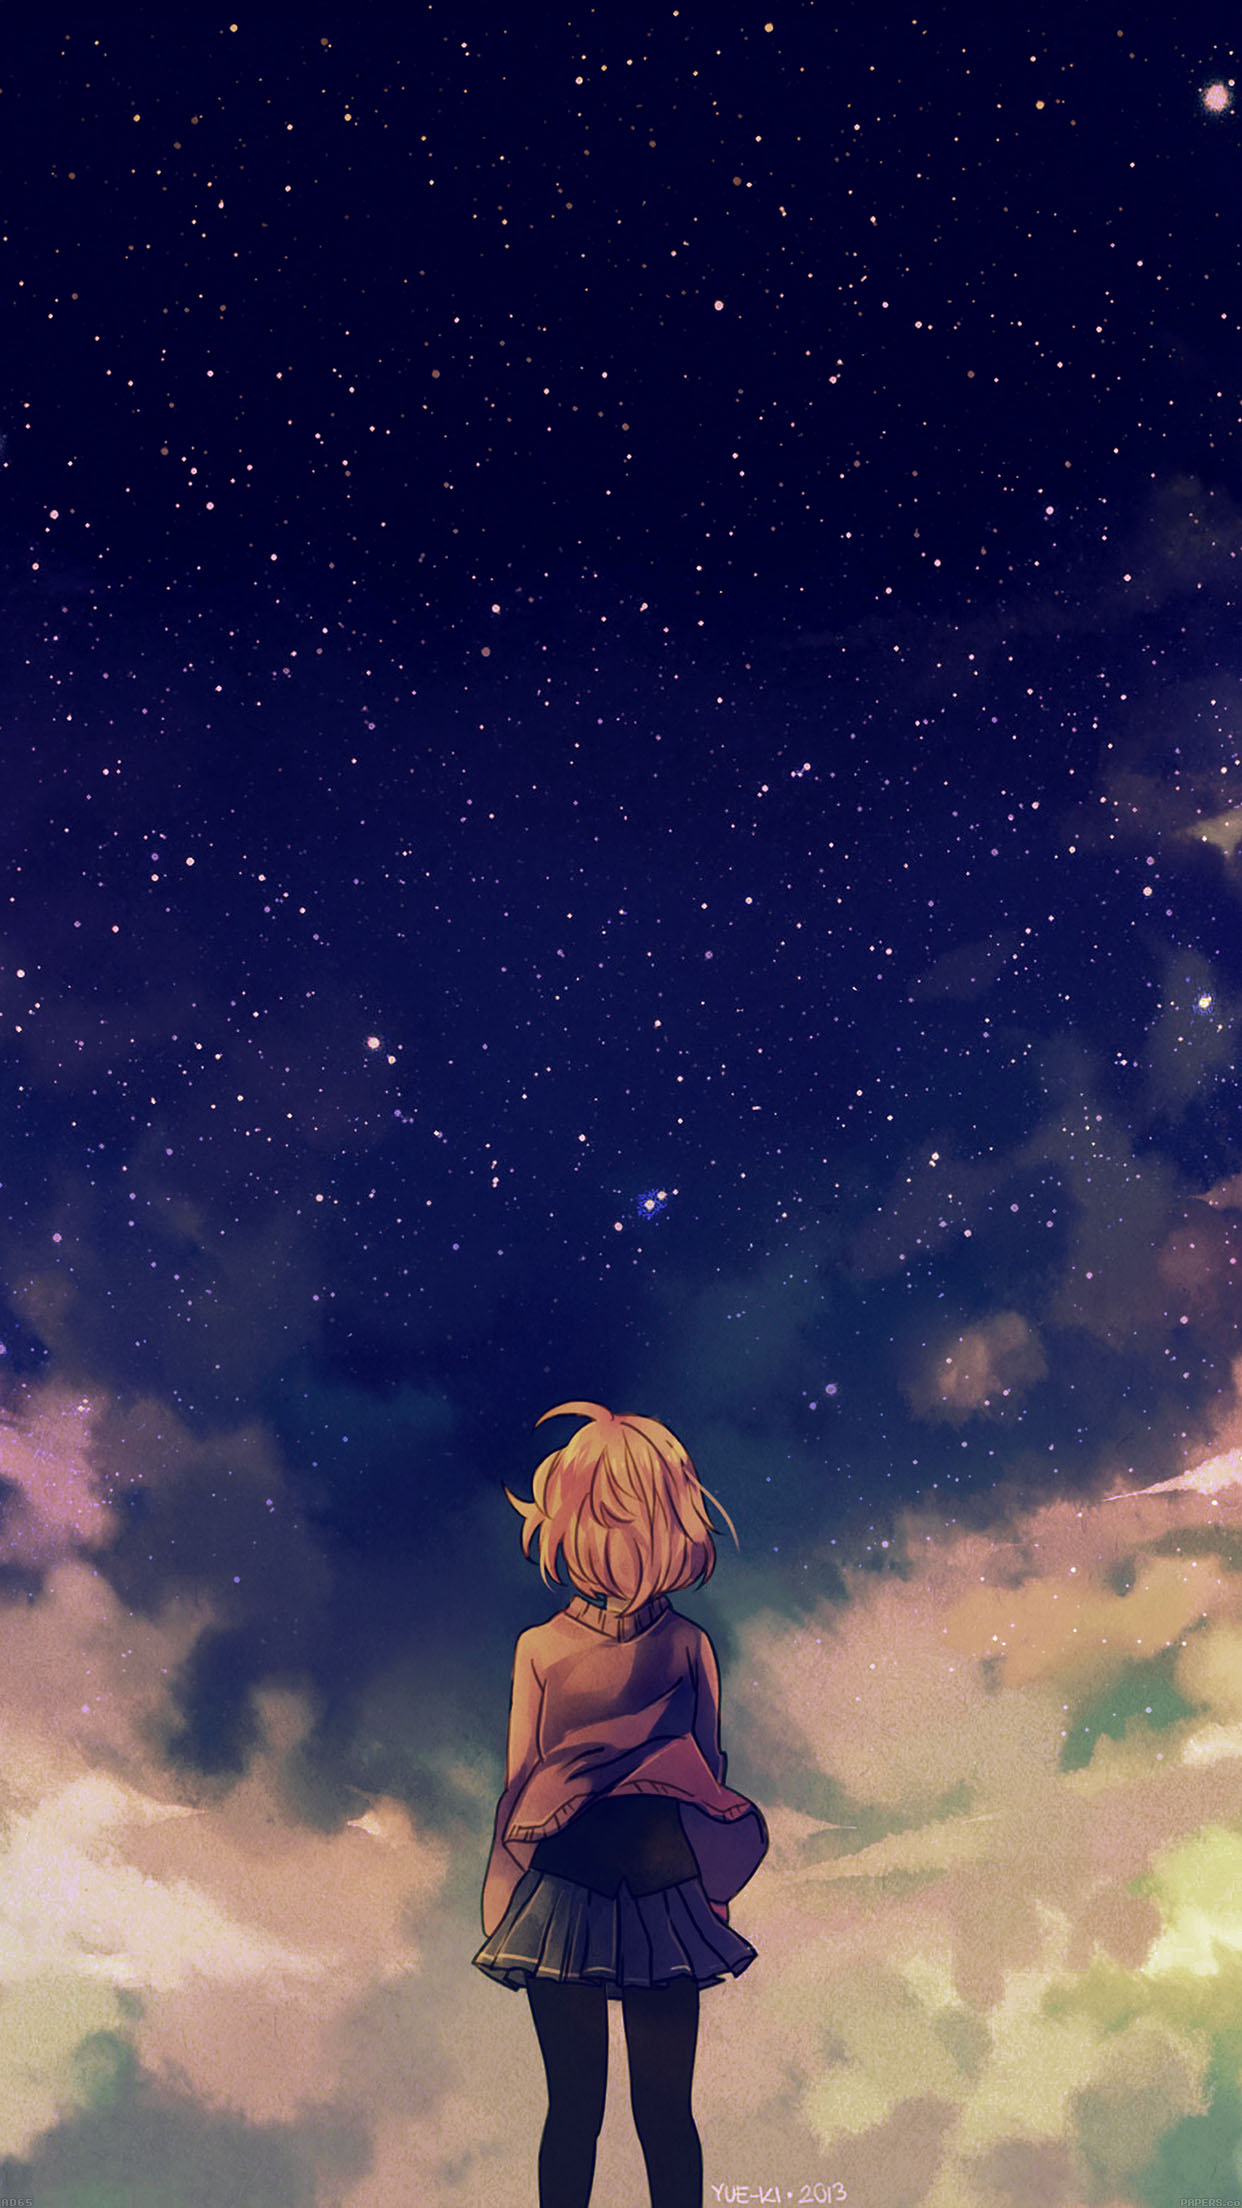 Iphone wallpaper ad65 starry space illust - Kawaii anime iphone wallpaper ...